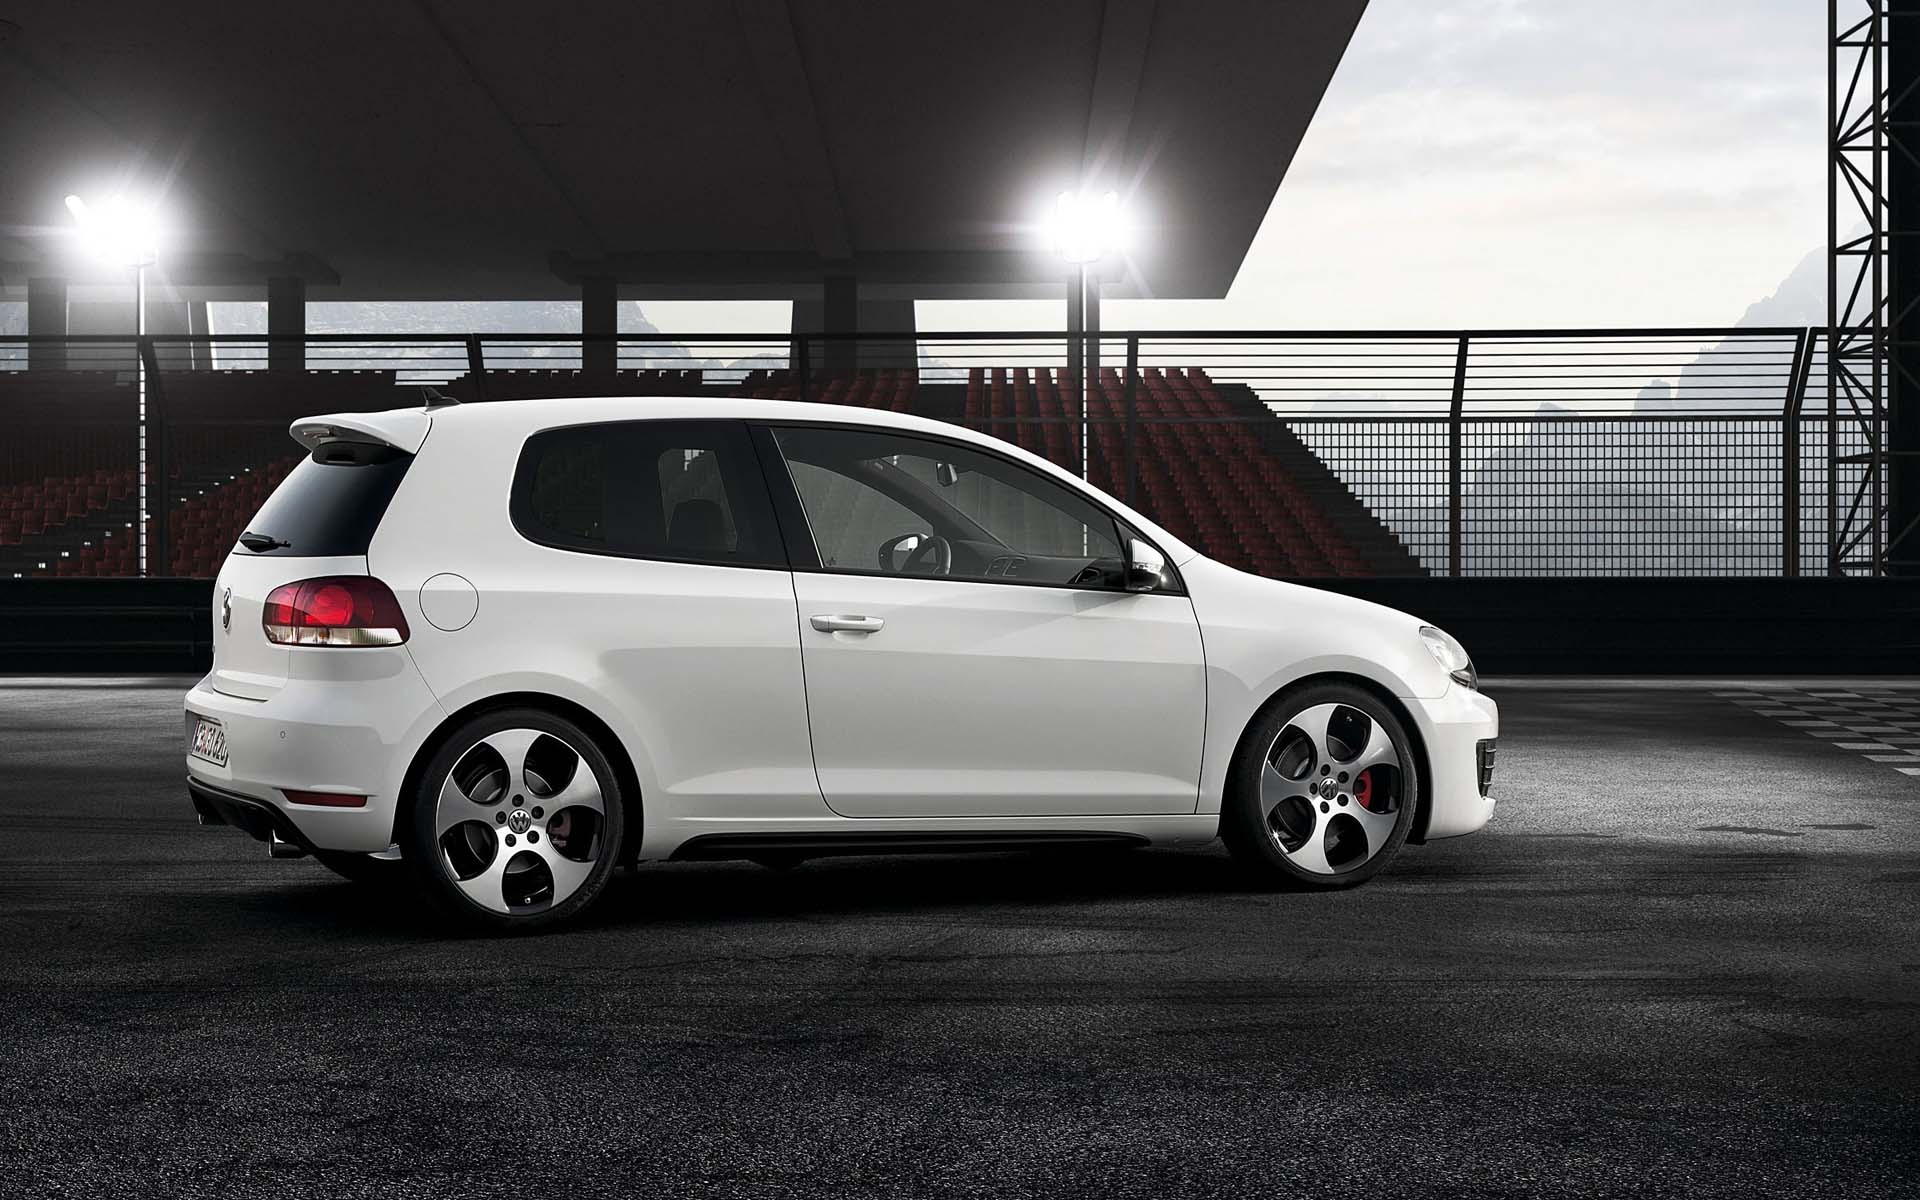 Golf_Gti_Wallpapers8